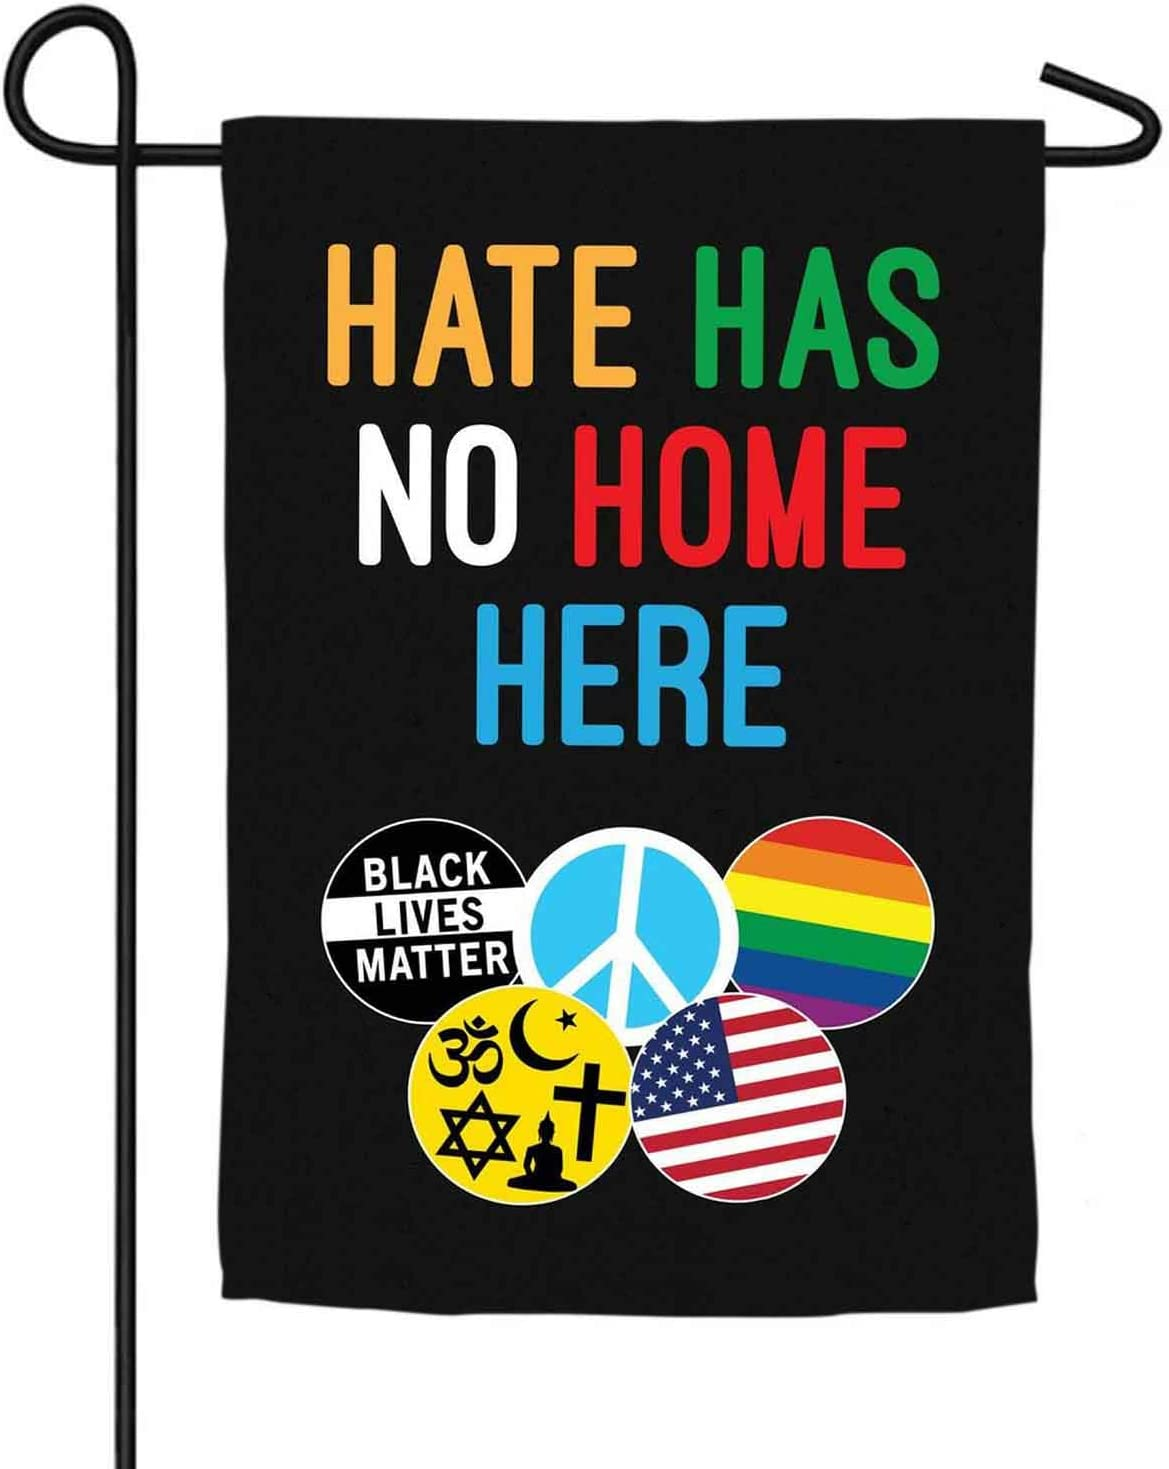 CZQHFLAU Hate Has No Home Here In This House We Believe Peace Equality Farmhouse Yard Outdoor Decoration Burlap Garden Flag 12.5 x 18 Inch Double Sided